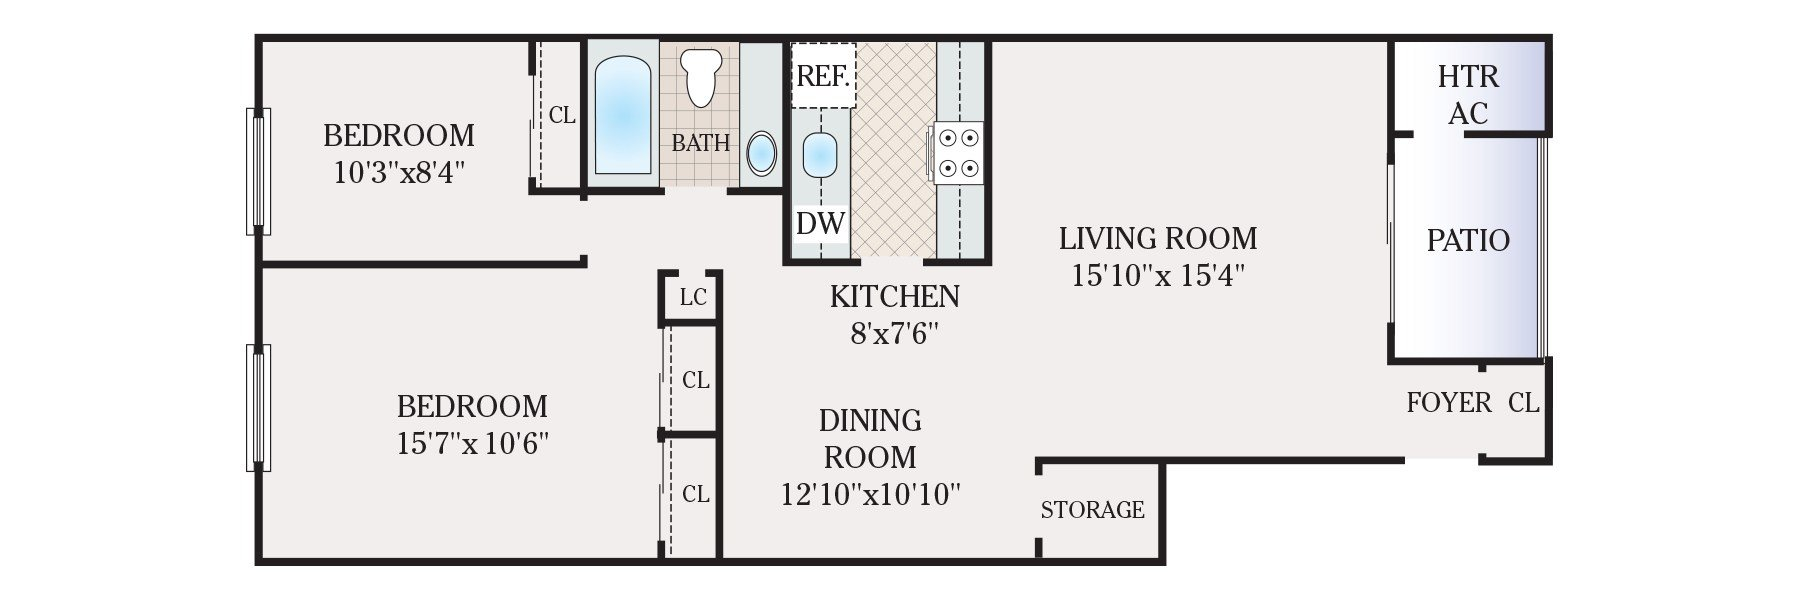 Best Apartments For Rent In Maple Shade Nj Foxmeadow Com With Pictures